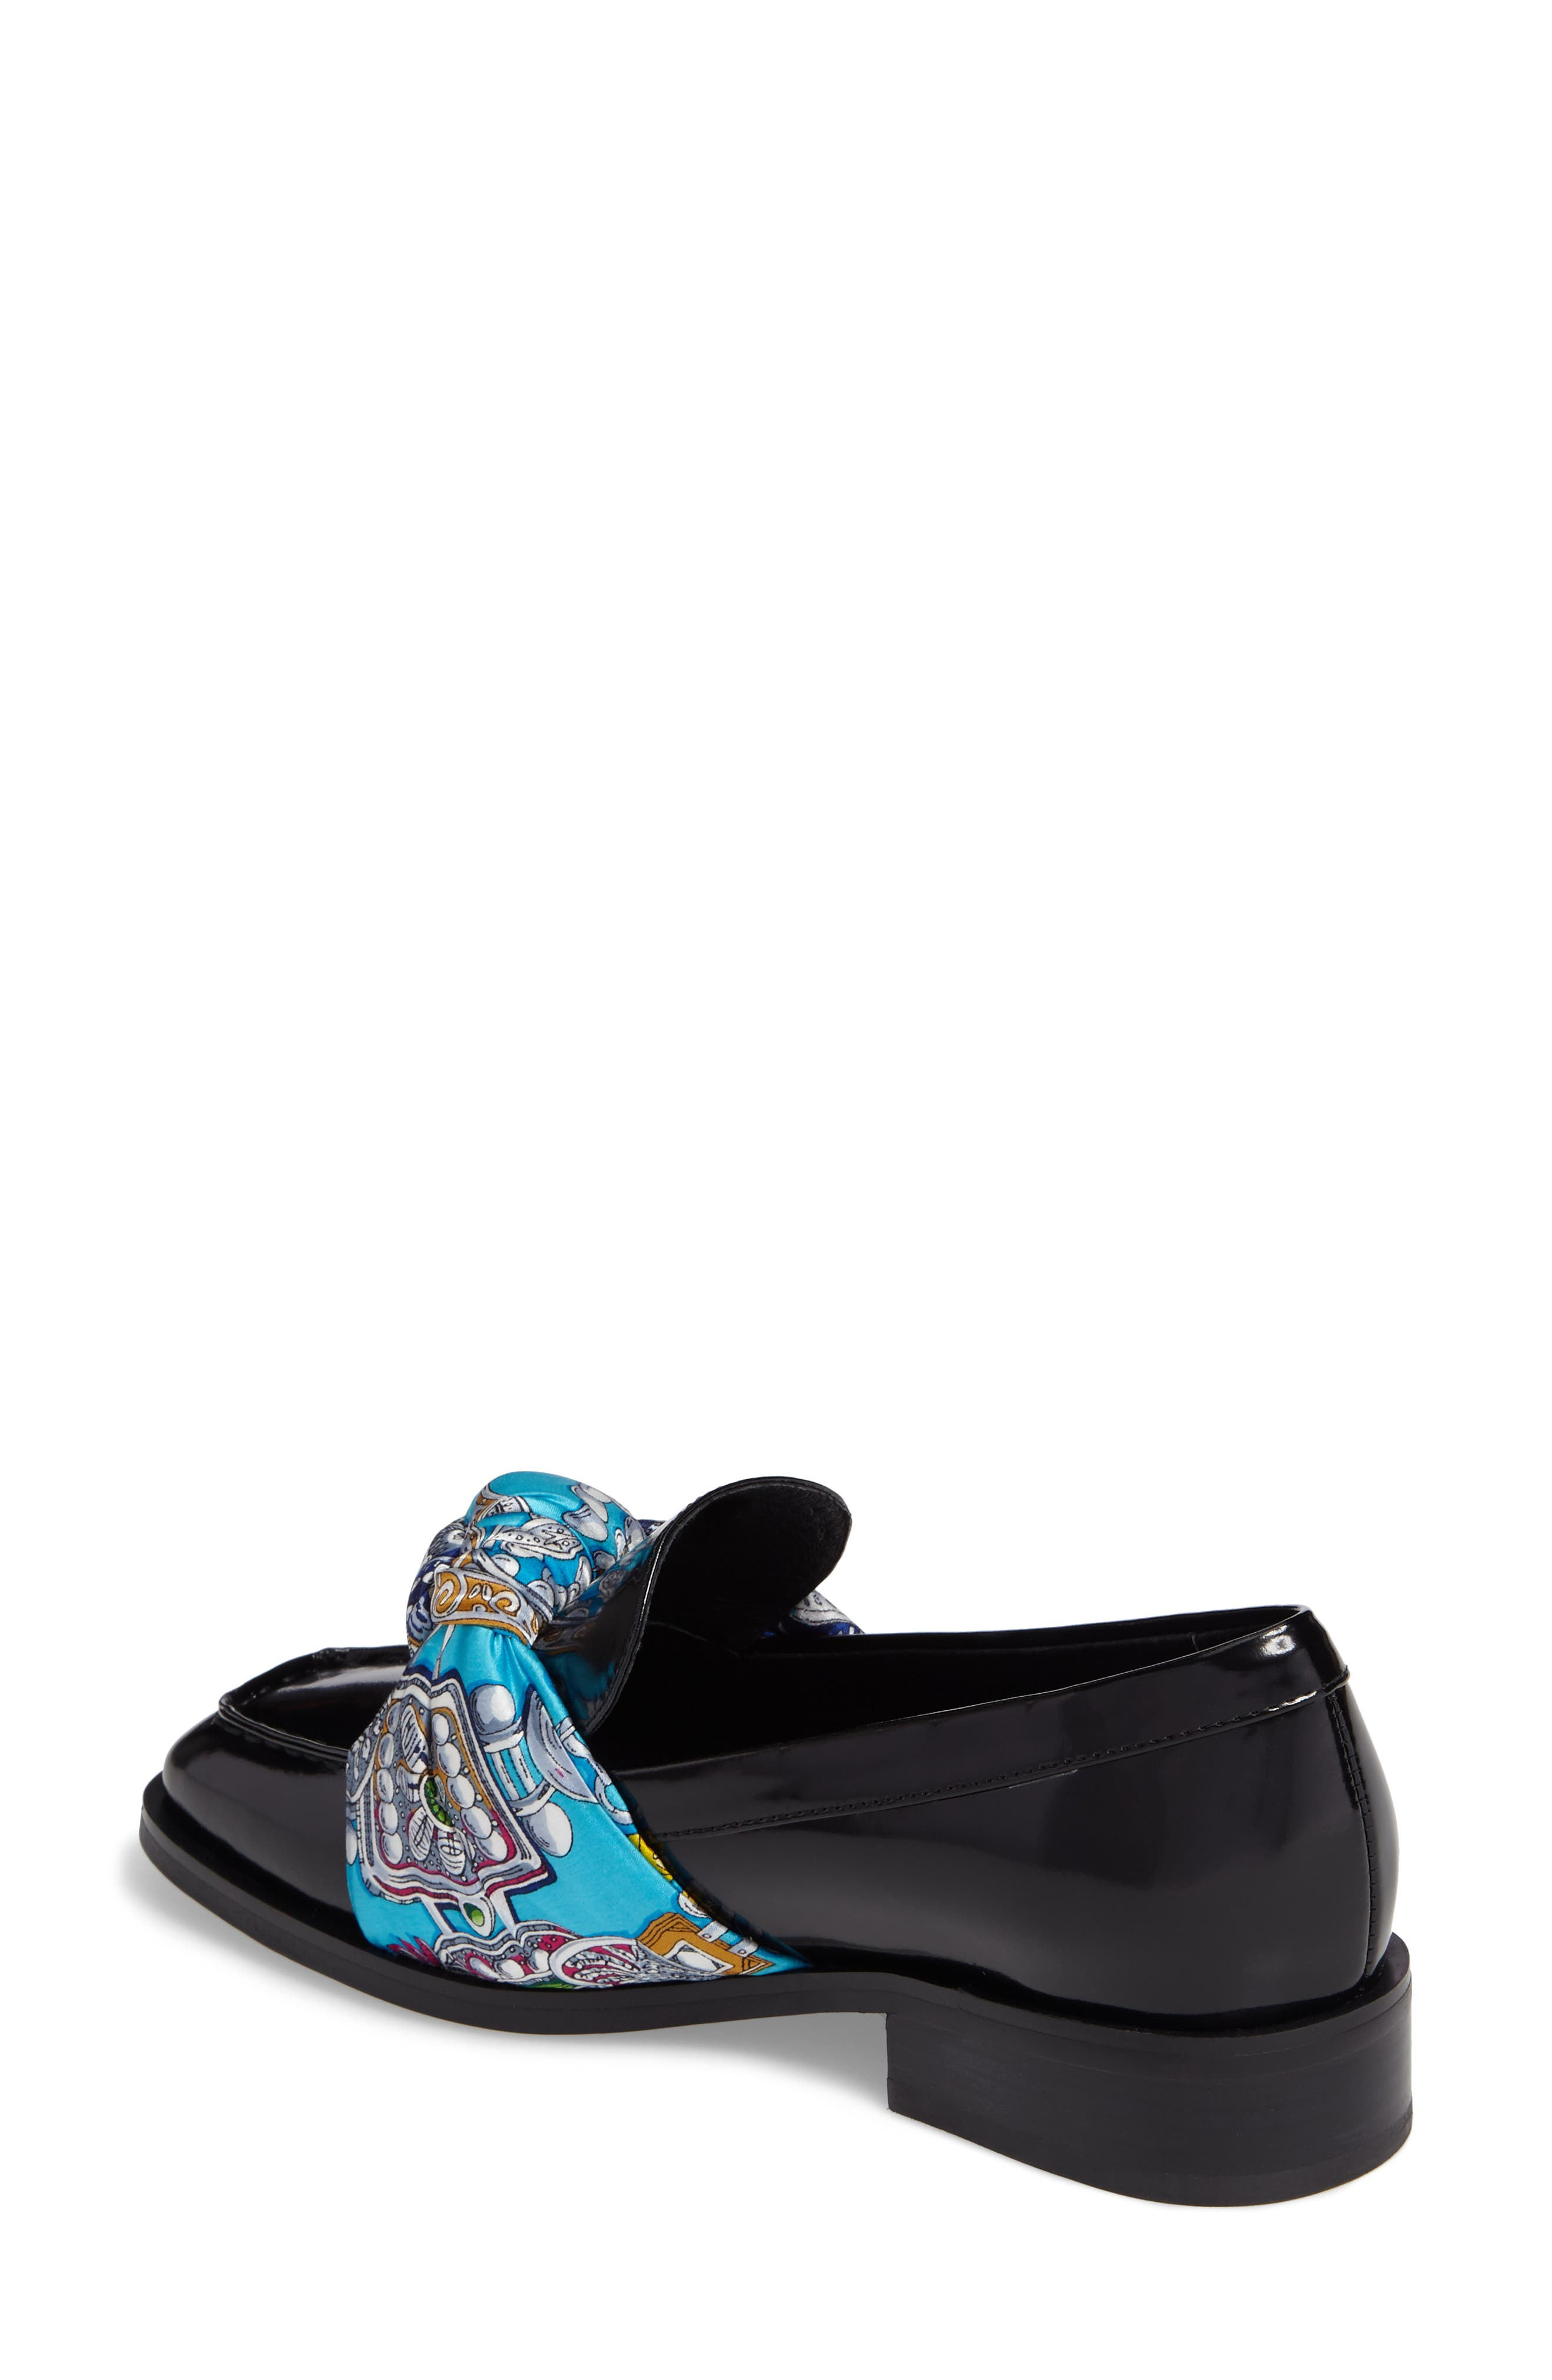 Alternate Image 2  - Jeffrey Campbell Bollero Loafer (Women)